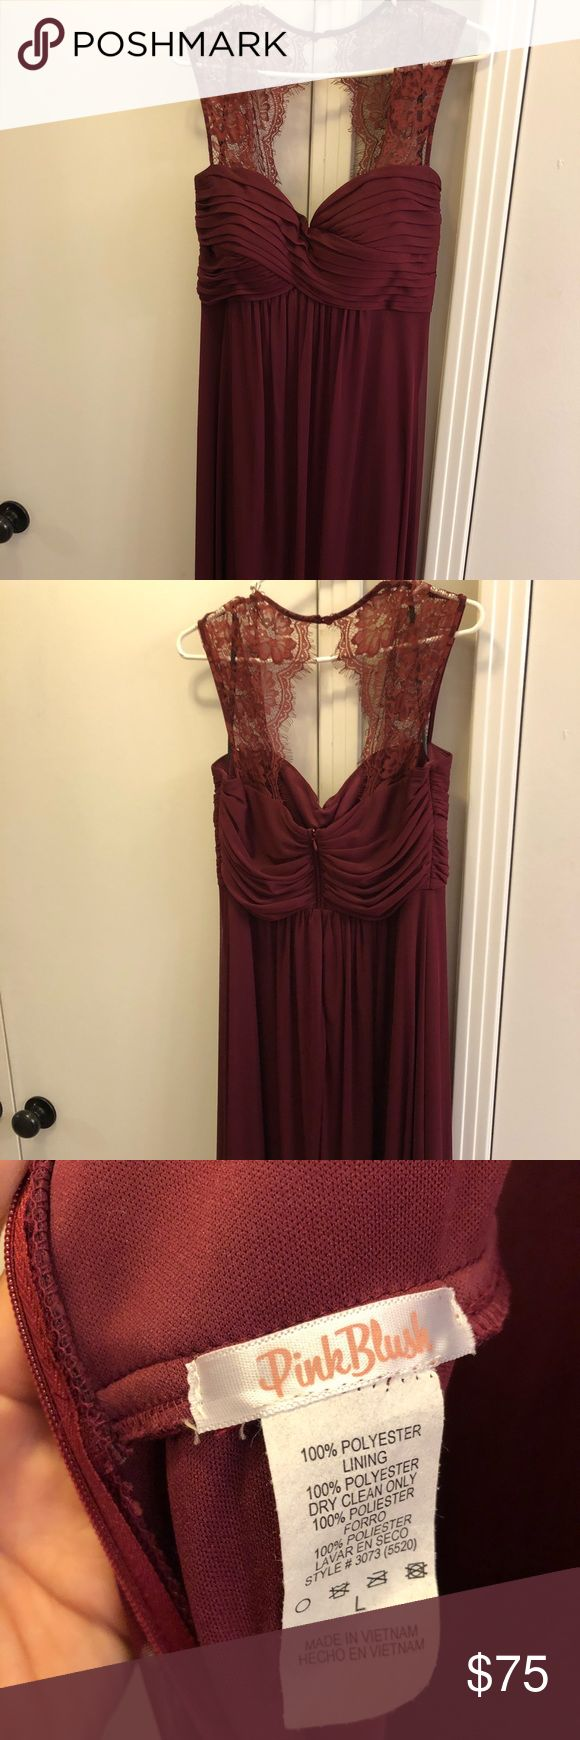 Pink Blush Boutique Maternity Gown Floor length maroon chiffon maternity gown, size large. Lace top, zip up back, padded bodice. Worn once, like new condition. Pink Blush Maternity Dresses